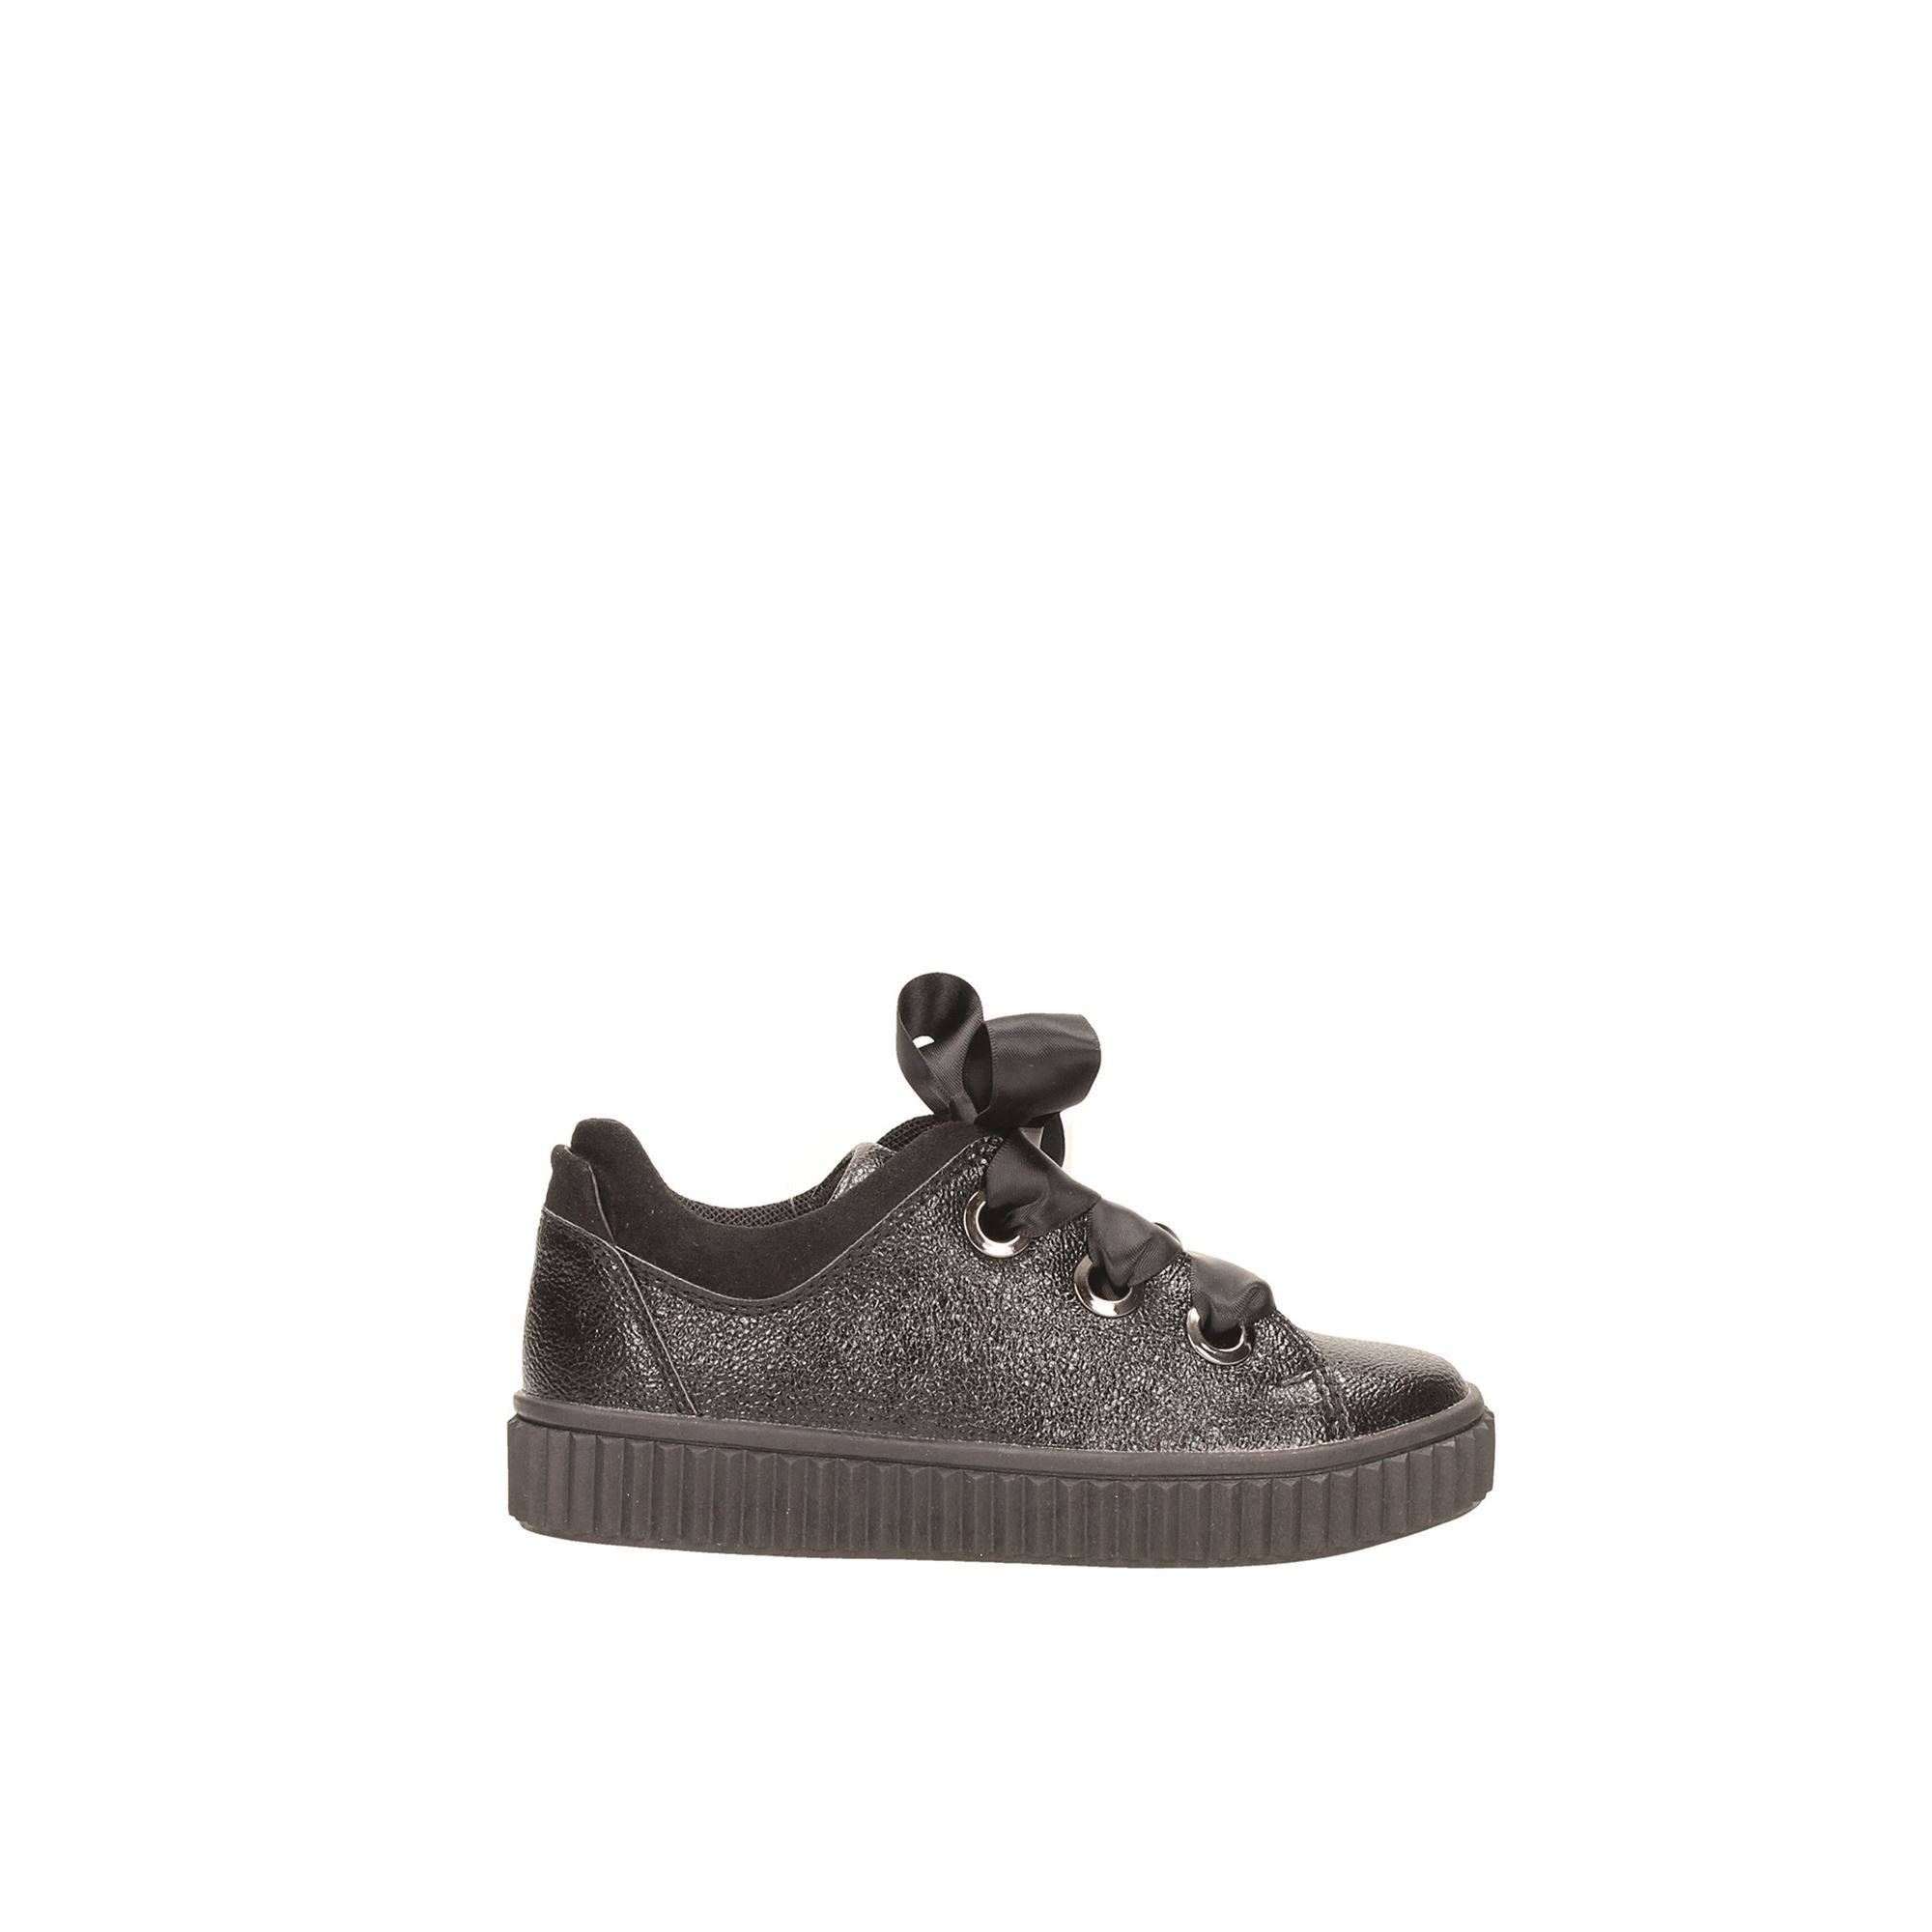 Tata Italia Shoes Junior Sneakers Black K18171-B21